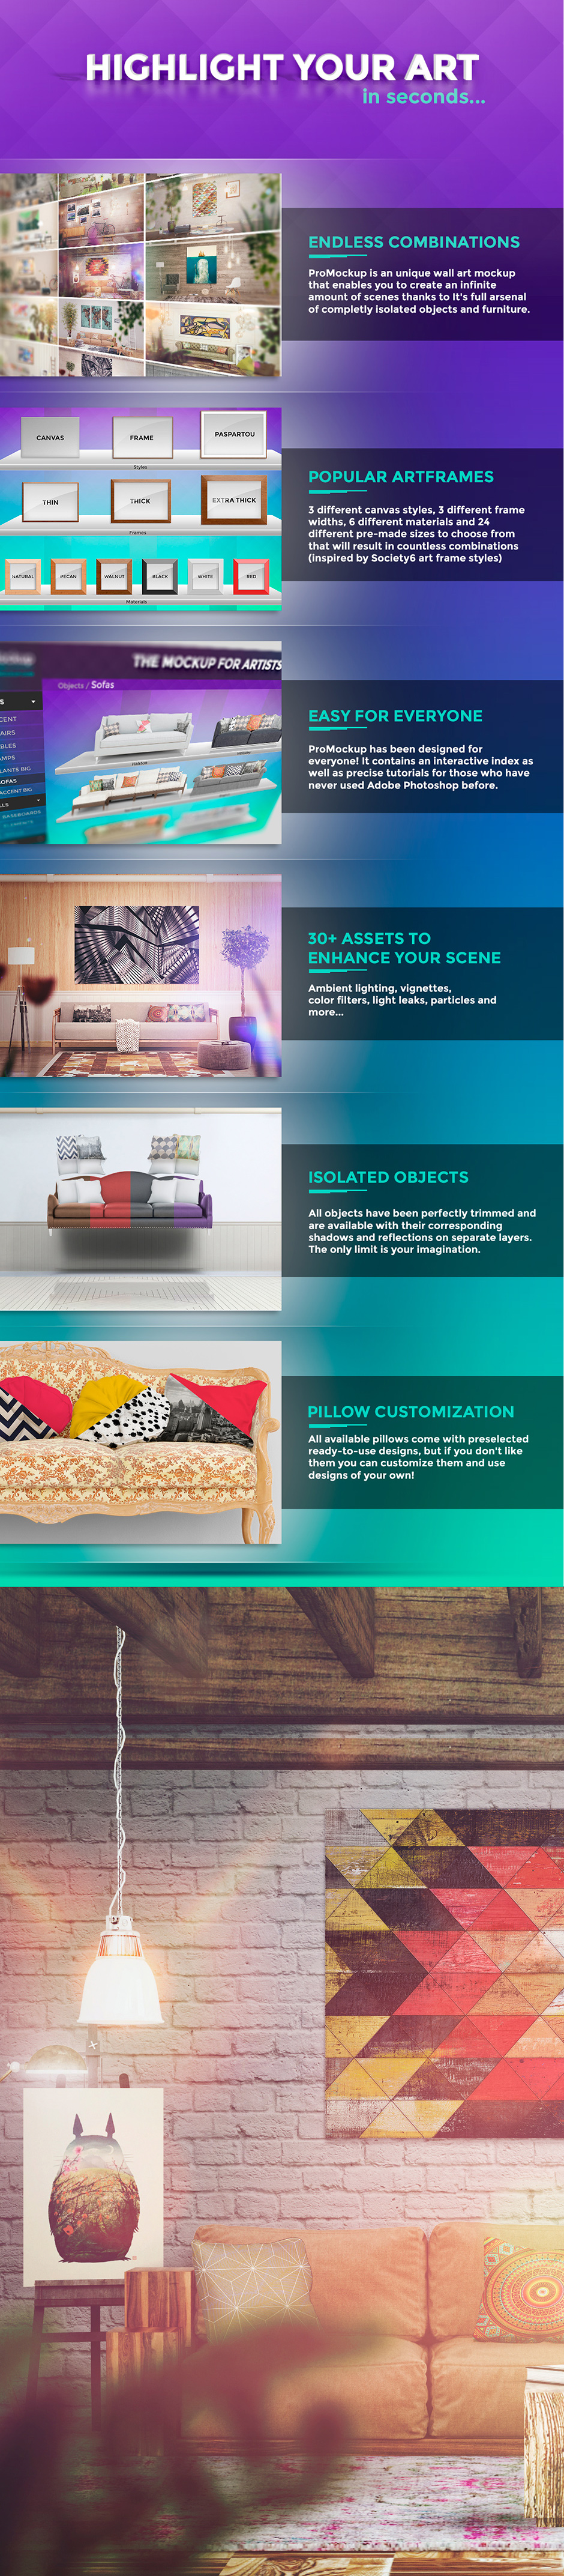 Pro Mockup - Art Scene Creator / Endless combinations